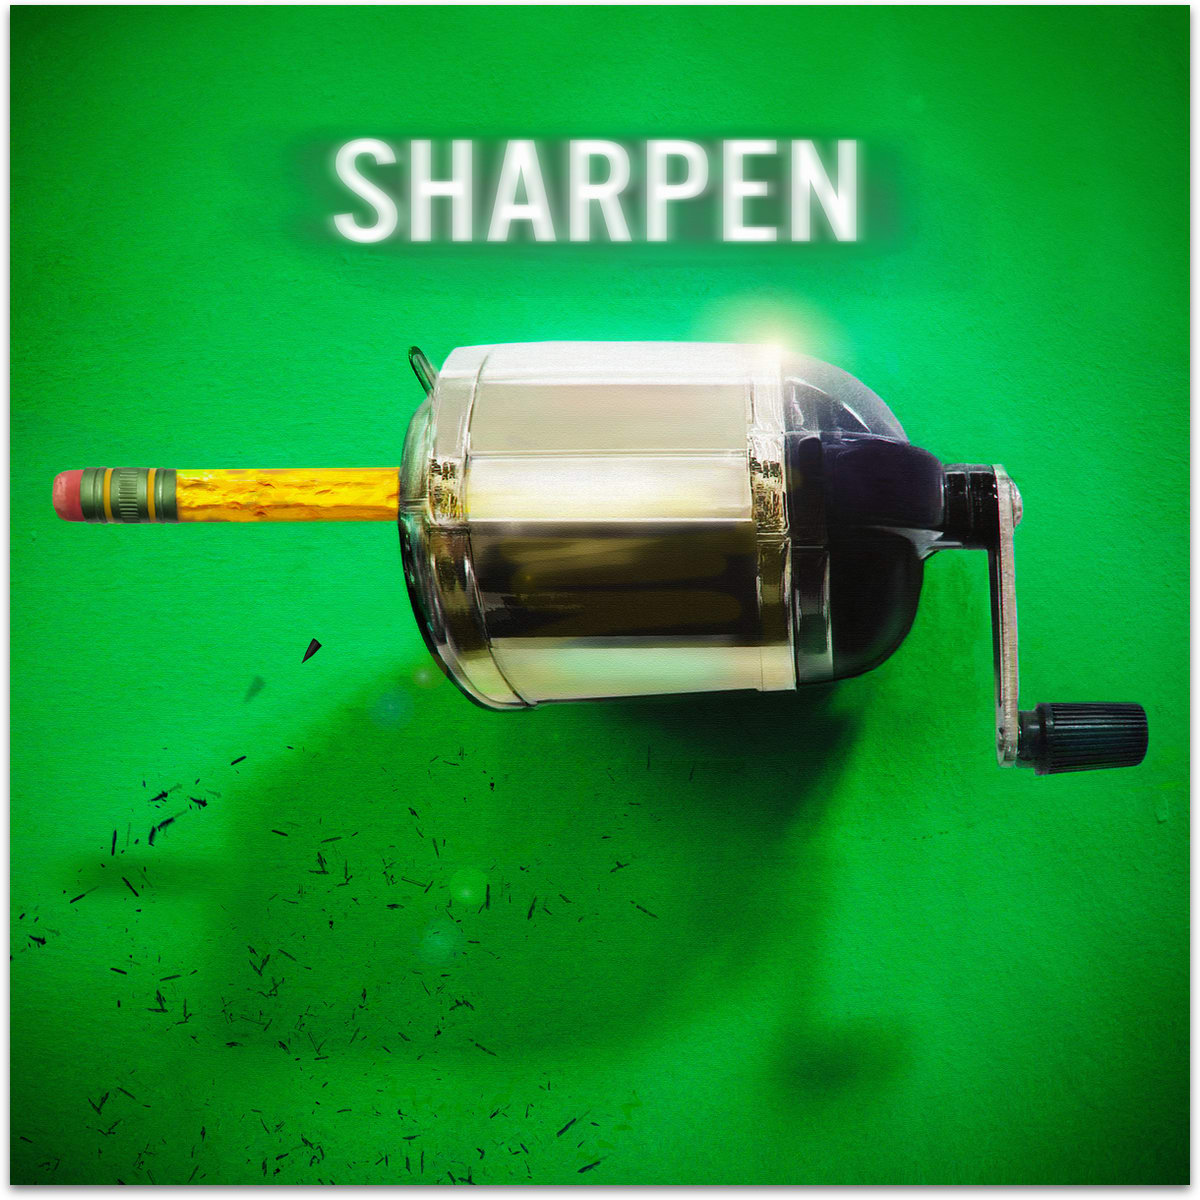 SHARPEN: ENHANCED PHOTOGRAPHY ON METAL by judith angerman